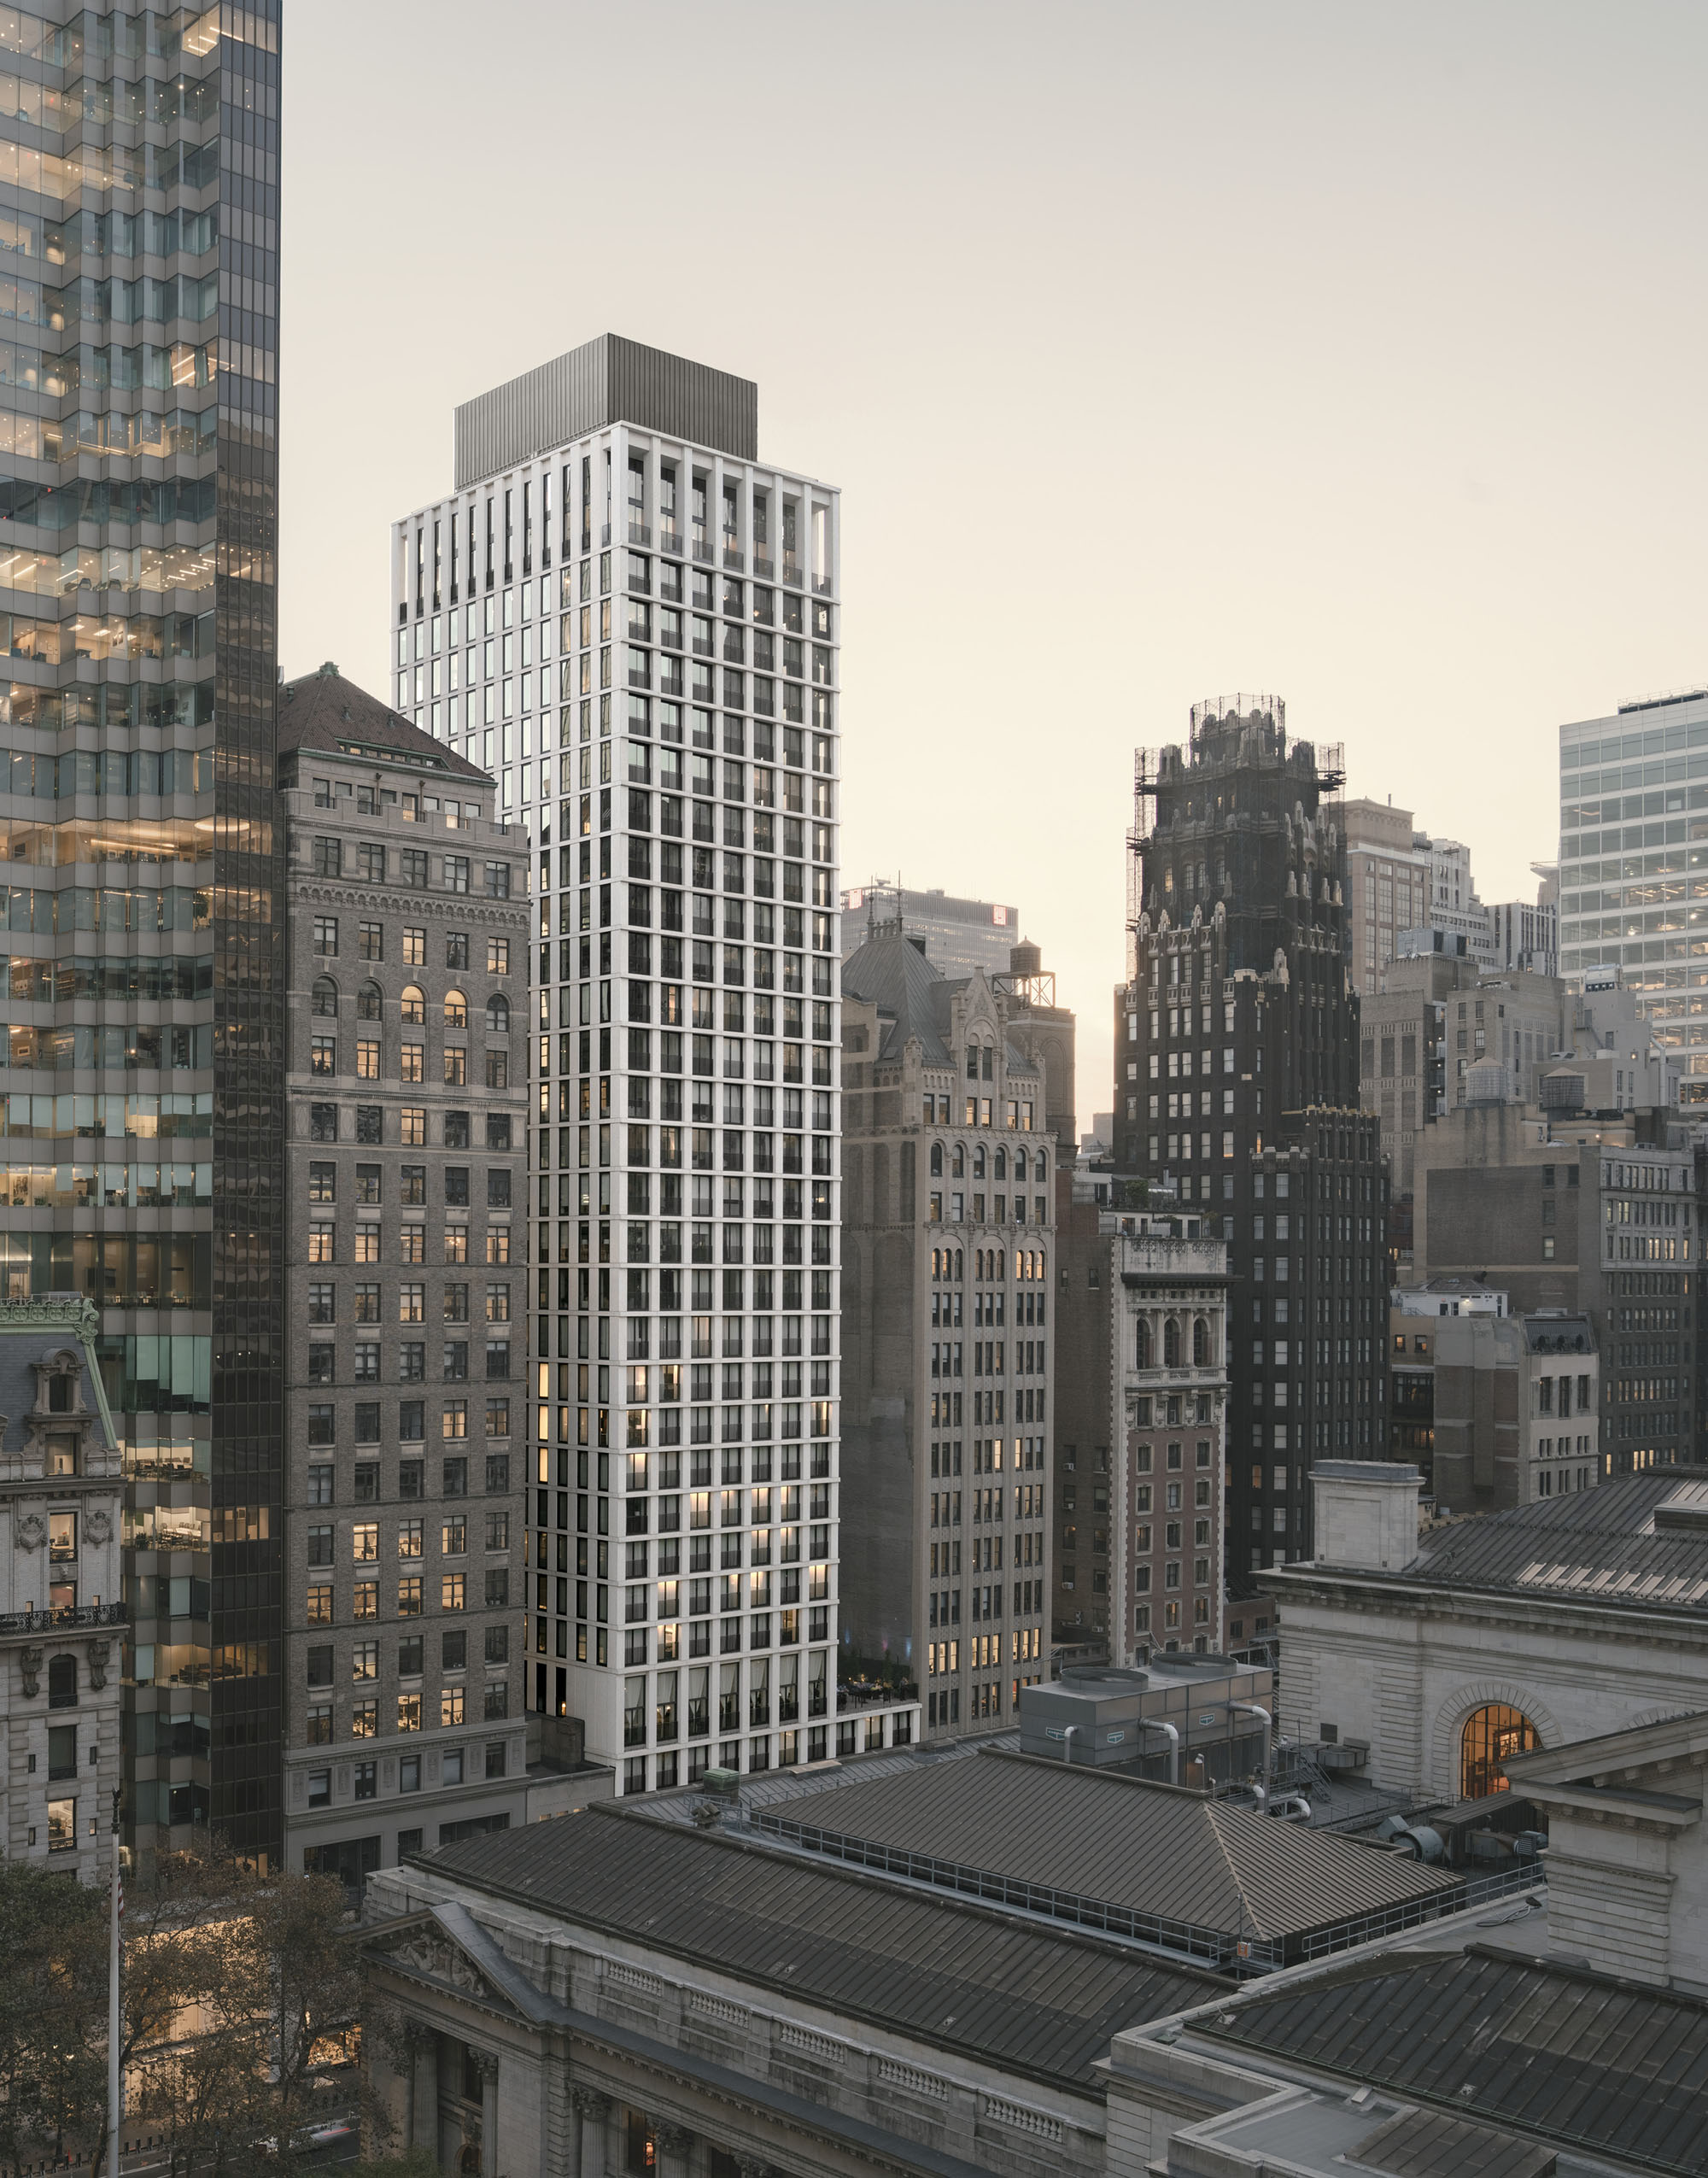 © Simon Menges The building follows the typical New York tower composition: base, middle and crown